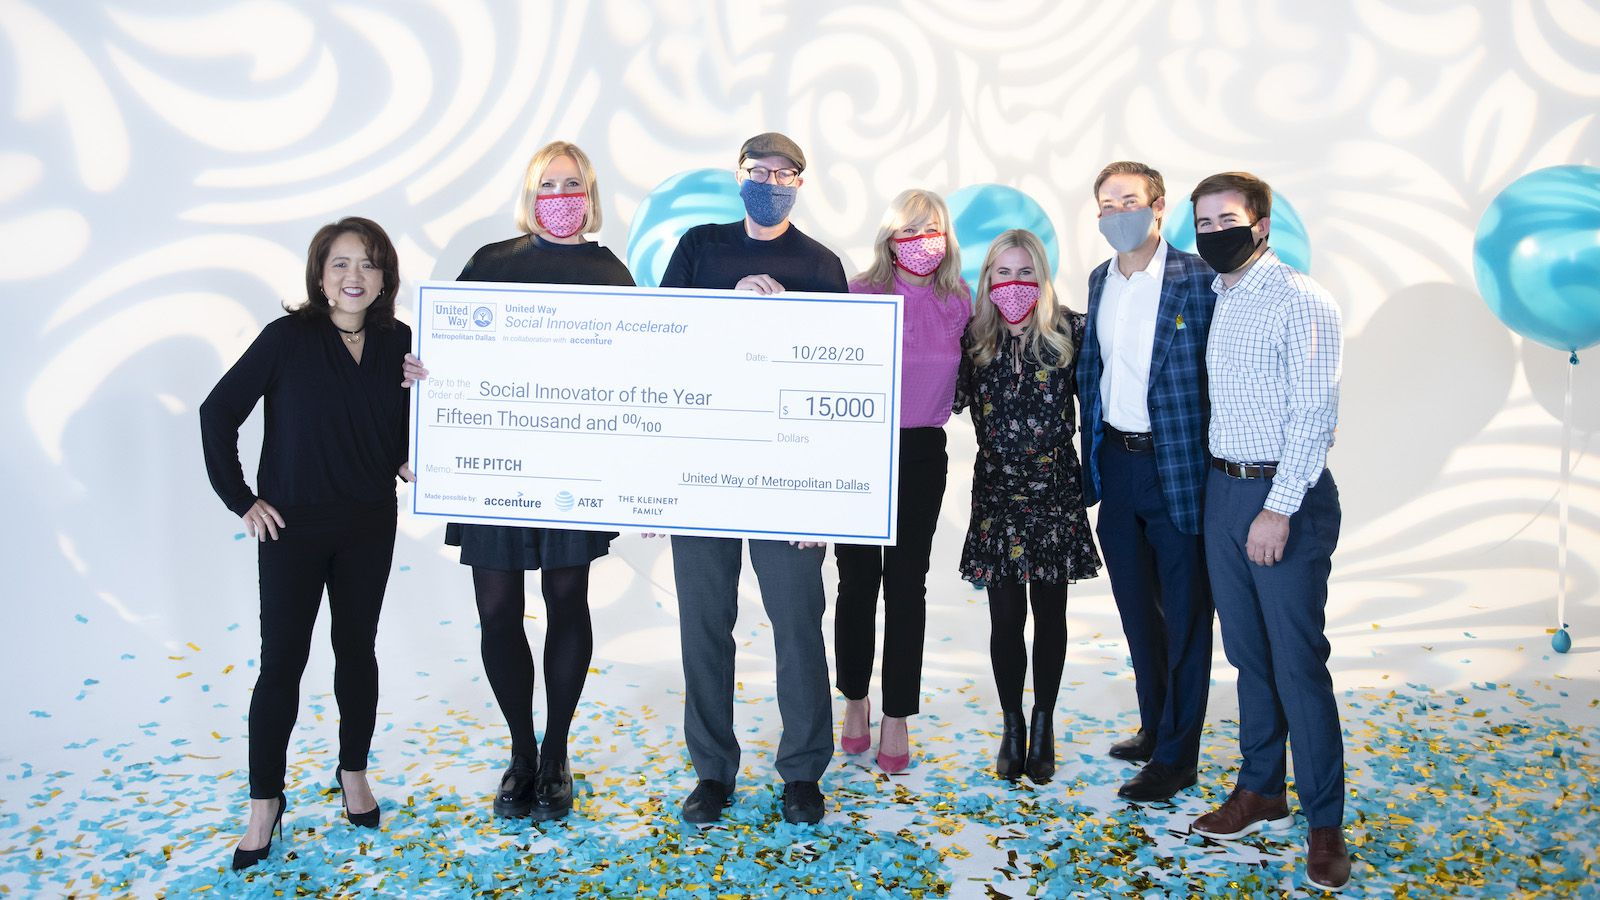 Jason Roberts (third from left) founded Better Block in 2006. In October, the nonprofit was named United Way of Metropolitan Dallas Social Innovator of the Year.